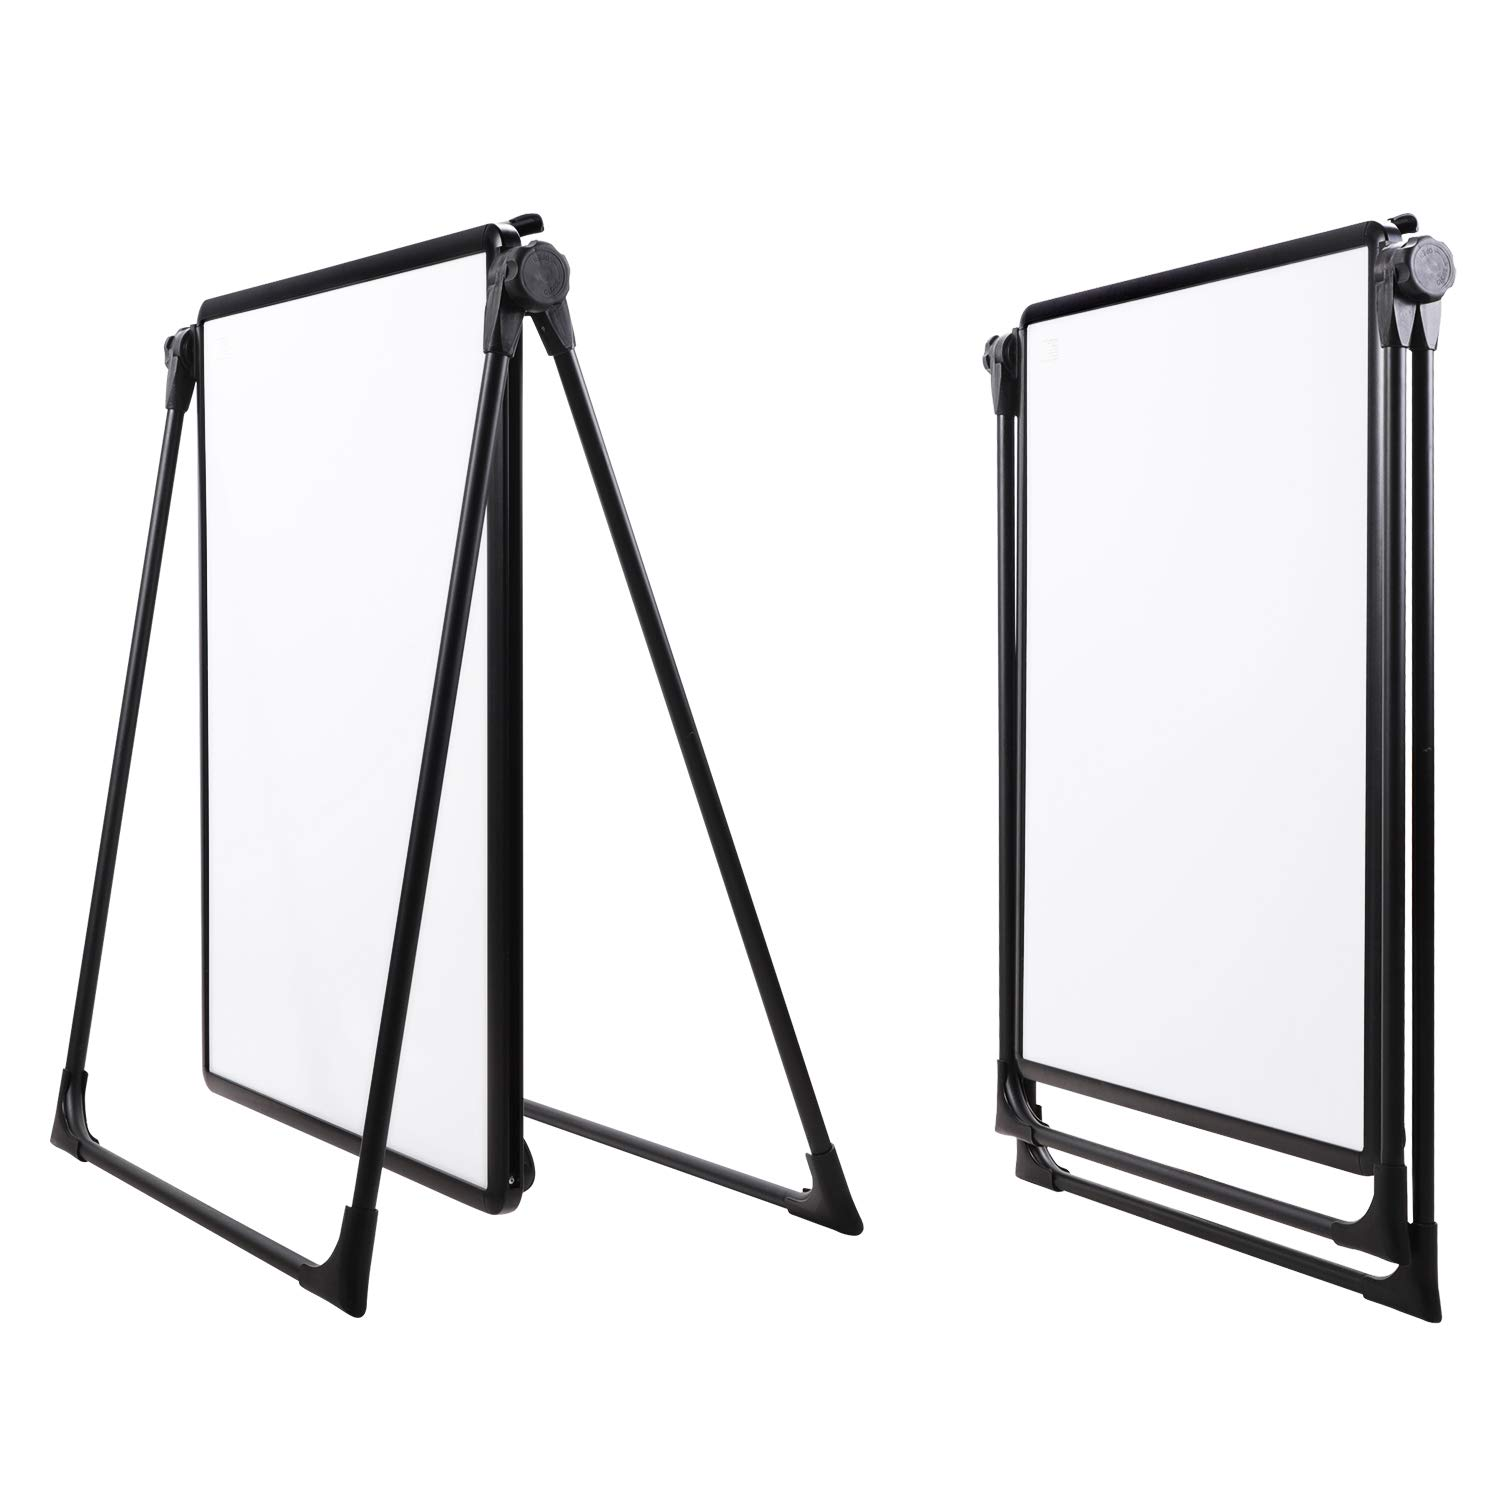 AmazonBasics Dry Erase Easel White Board, 28 x 36 Inch, Fold to Table